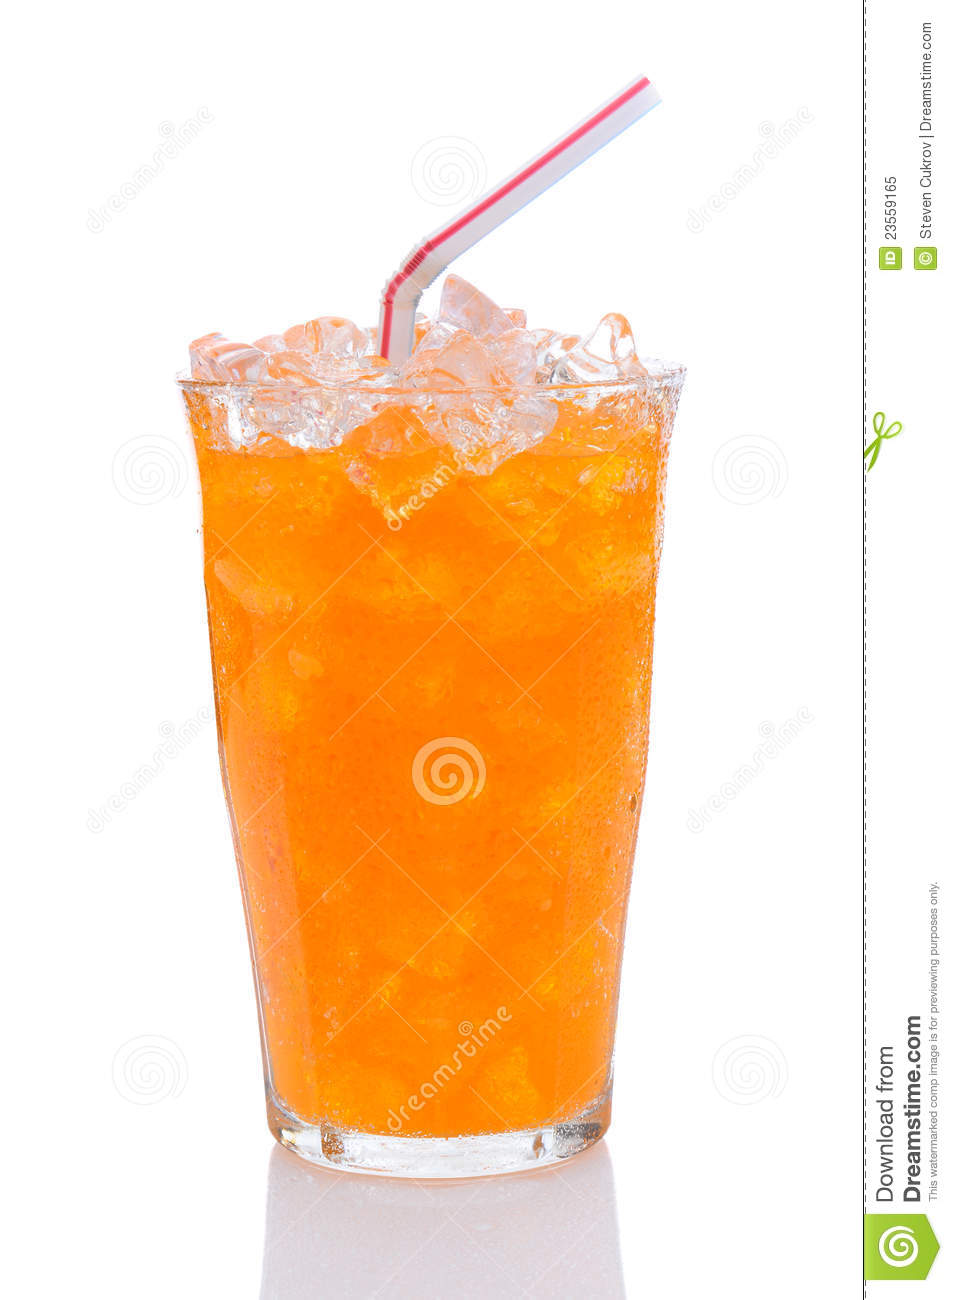 https://i1.wp.com/thumbs.dreamstime.com/z/glass-orange-soda-drinking-straw-23559165.jpg